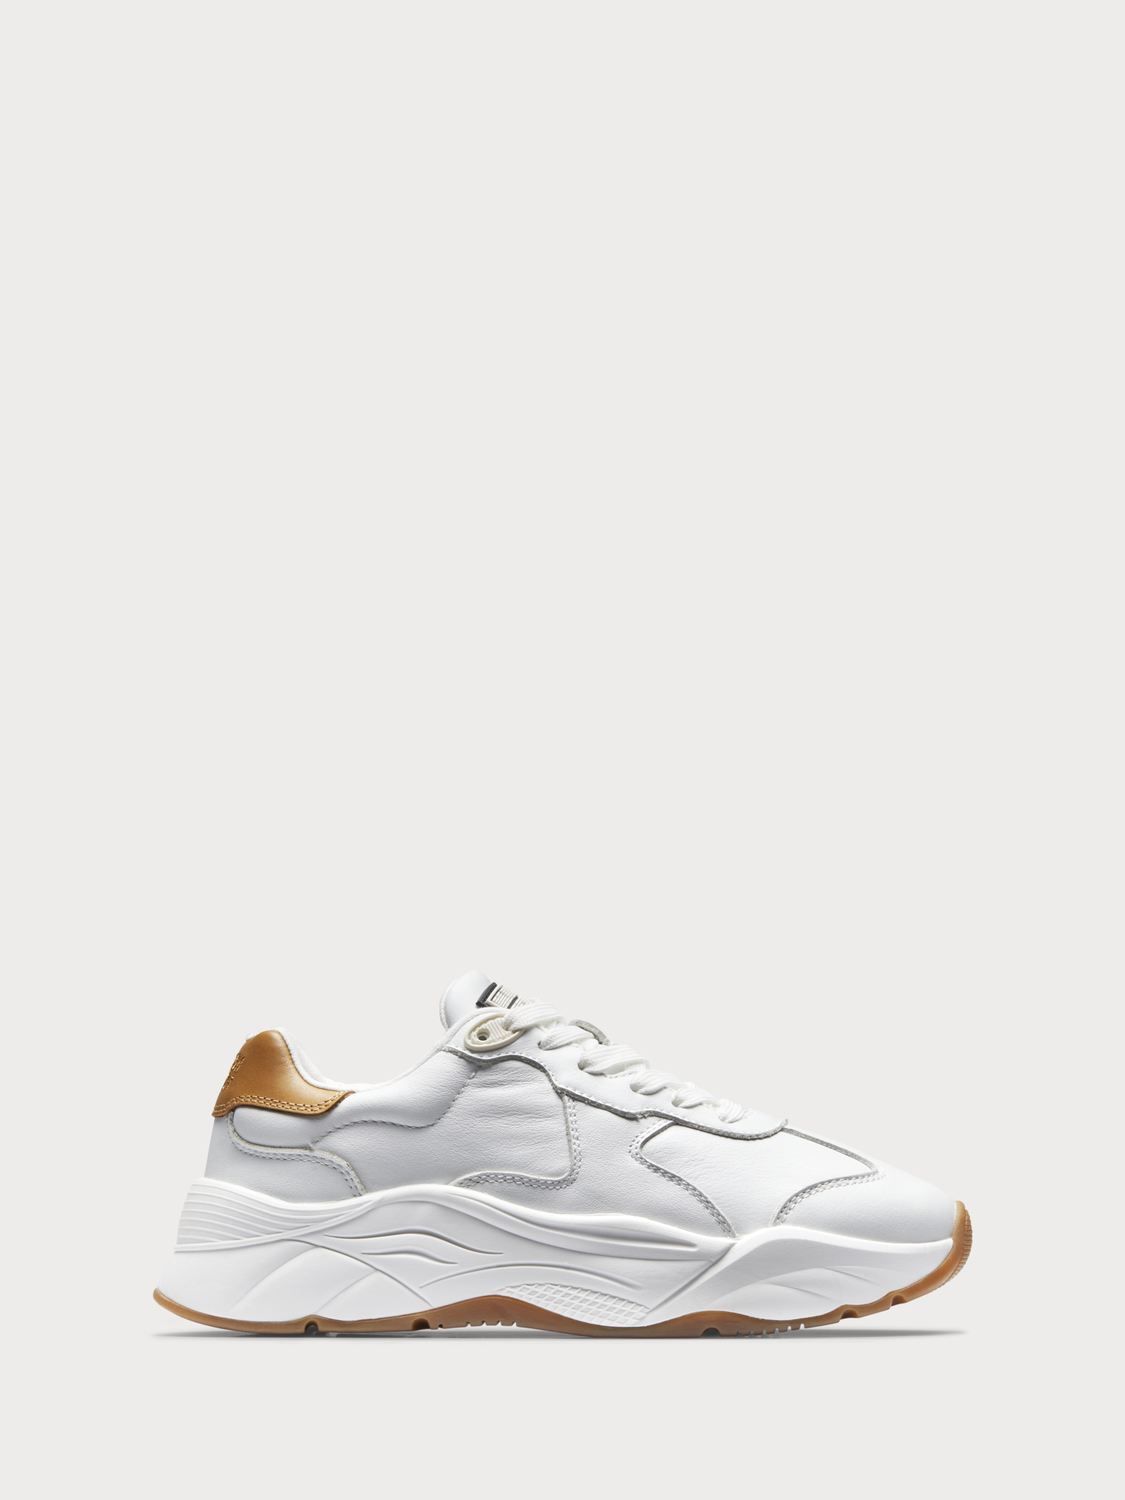 Femme Celest - Sneakers blanches massives